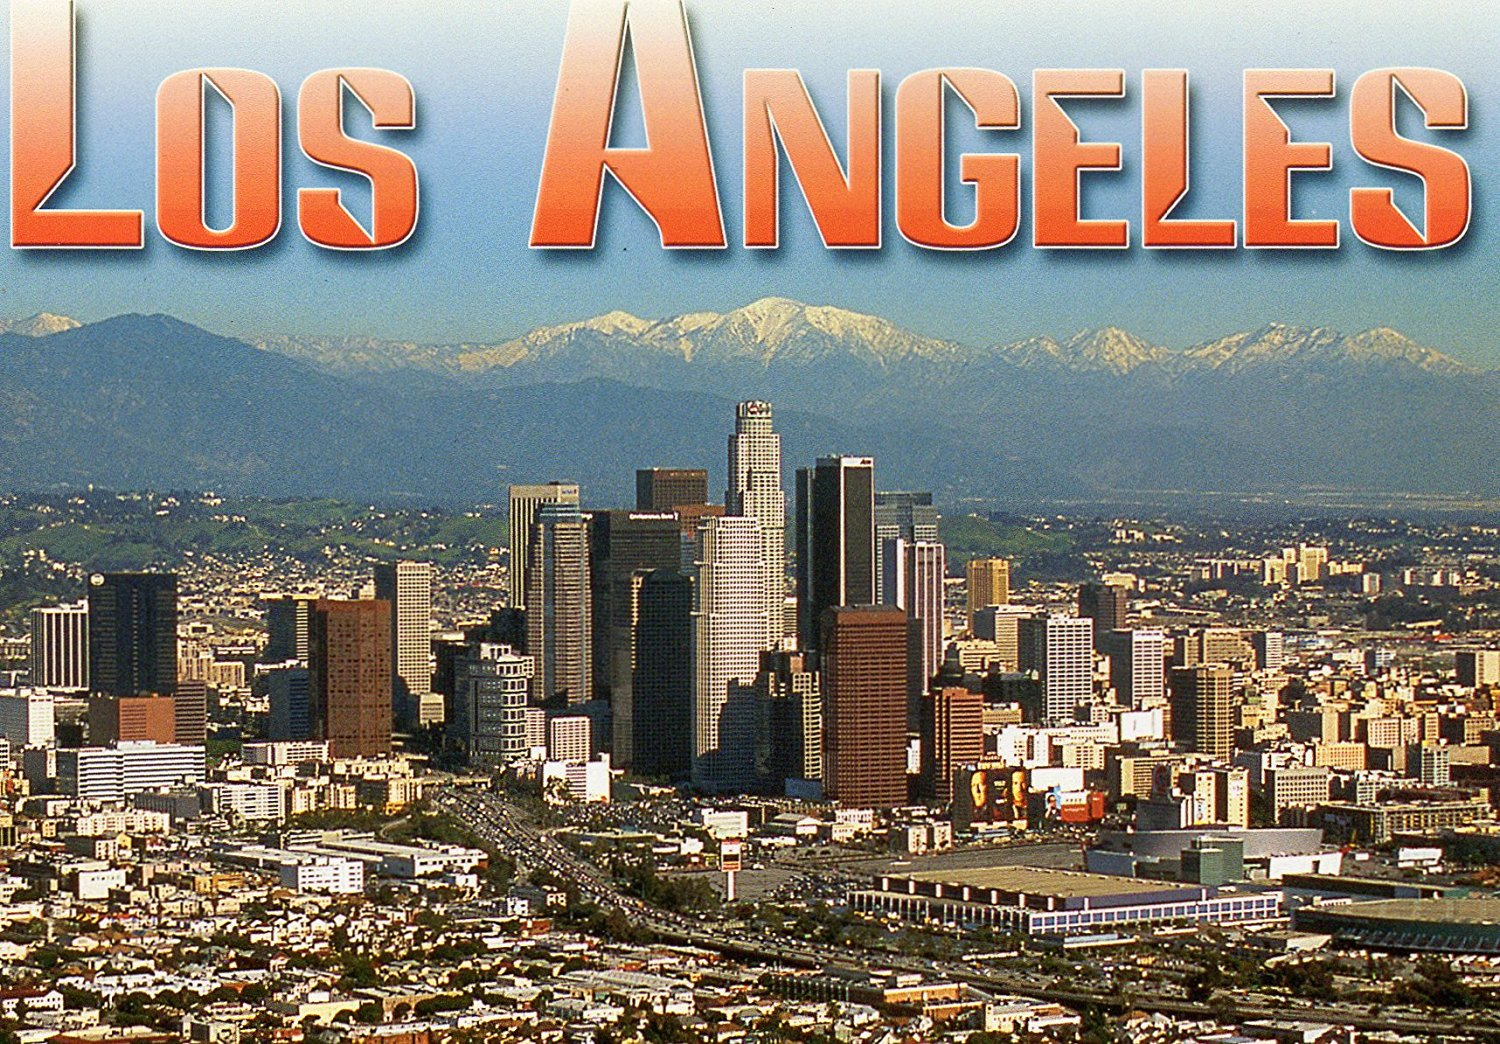 LOS ANGELES DOWNTOWN & CONVENTION CENTER T-912 POSTCARD .... from Hibiscus Express